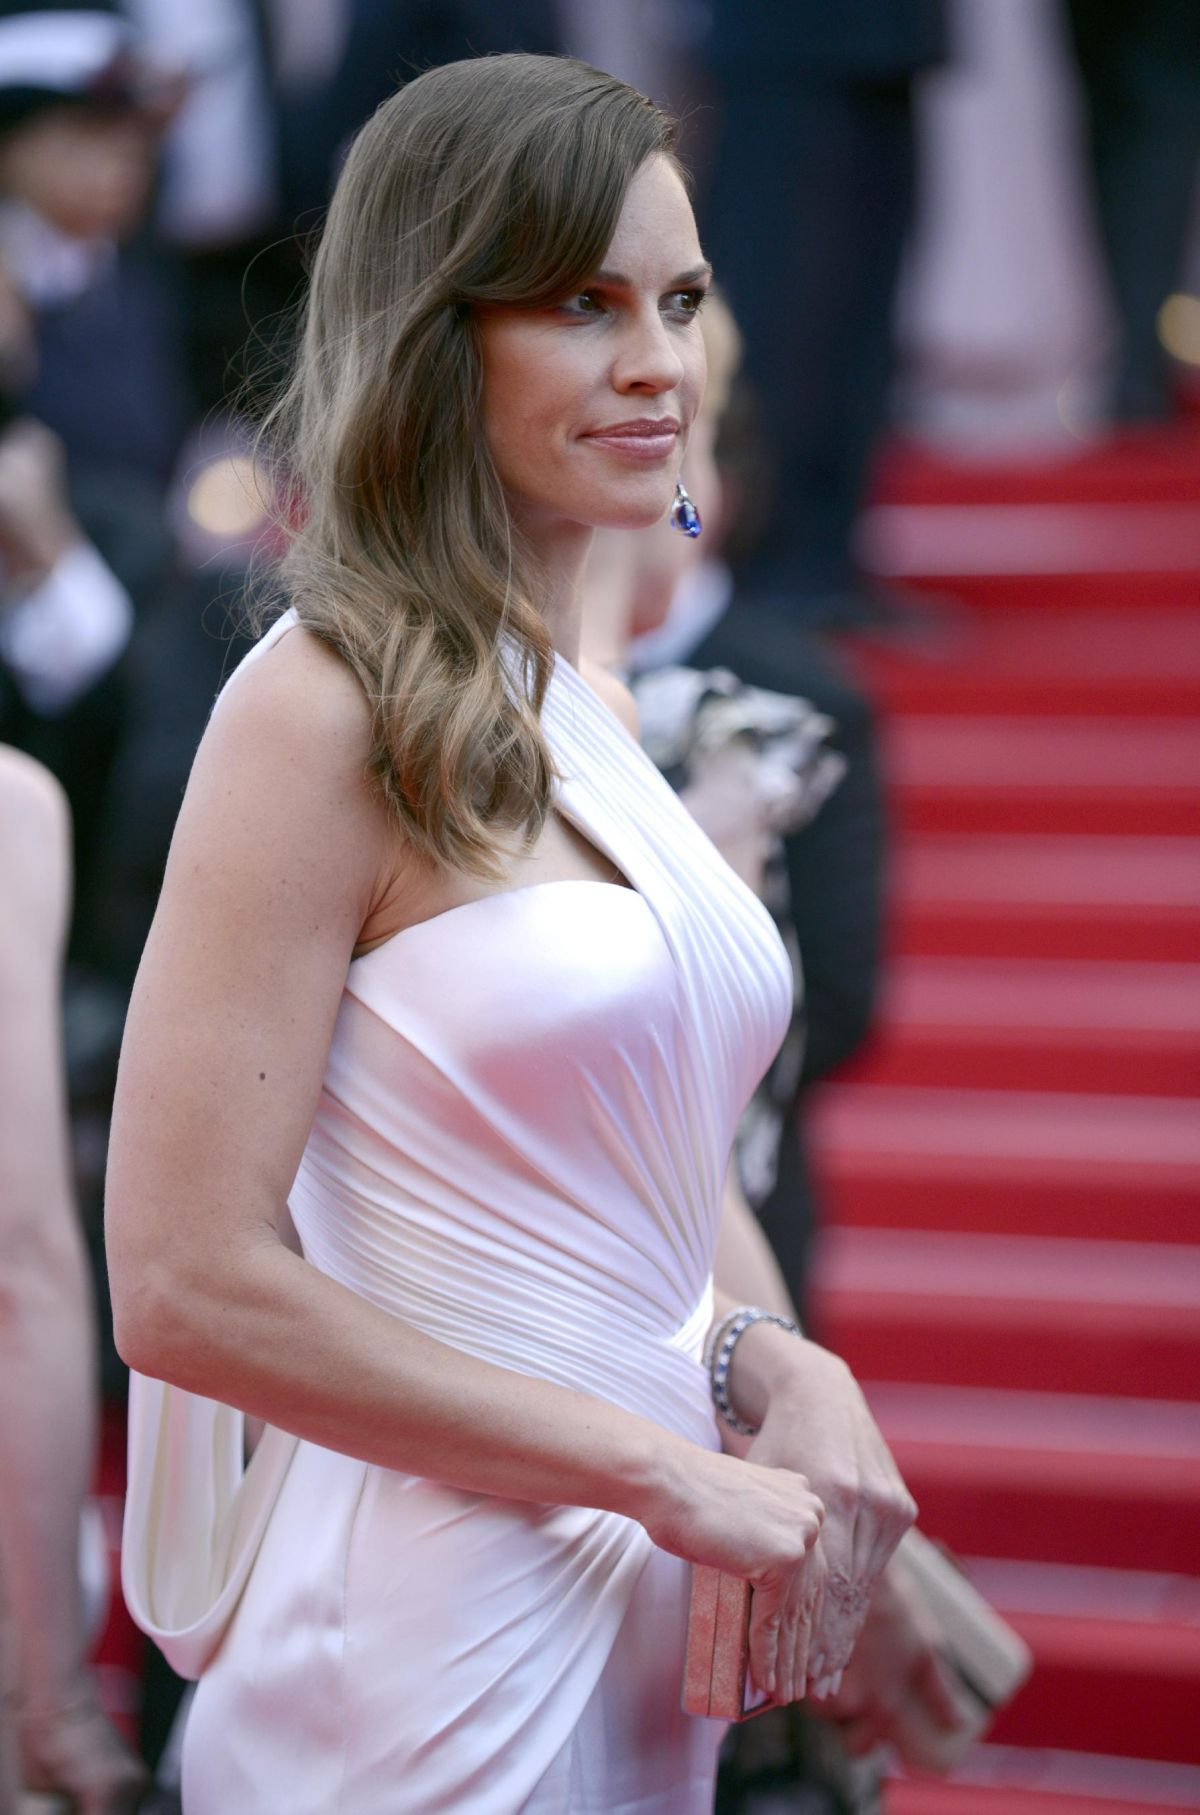 HILARY SWANK at The Homesman Premiere at Cannes Film Festival